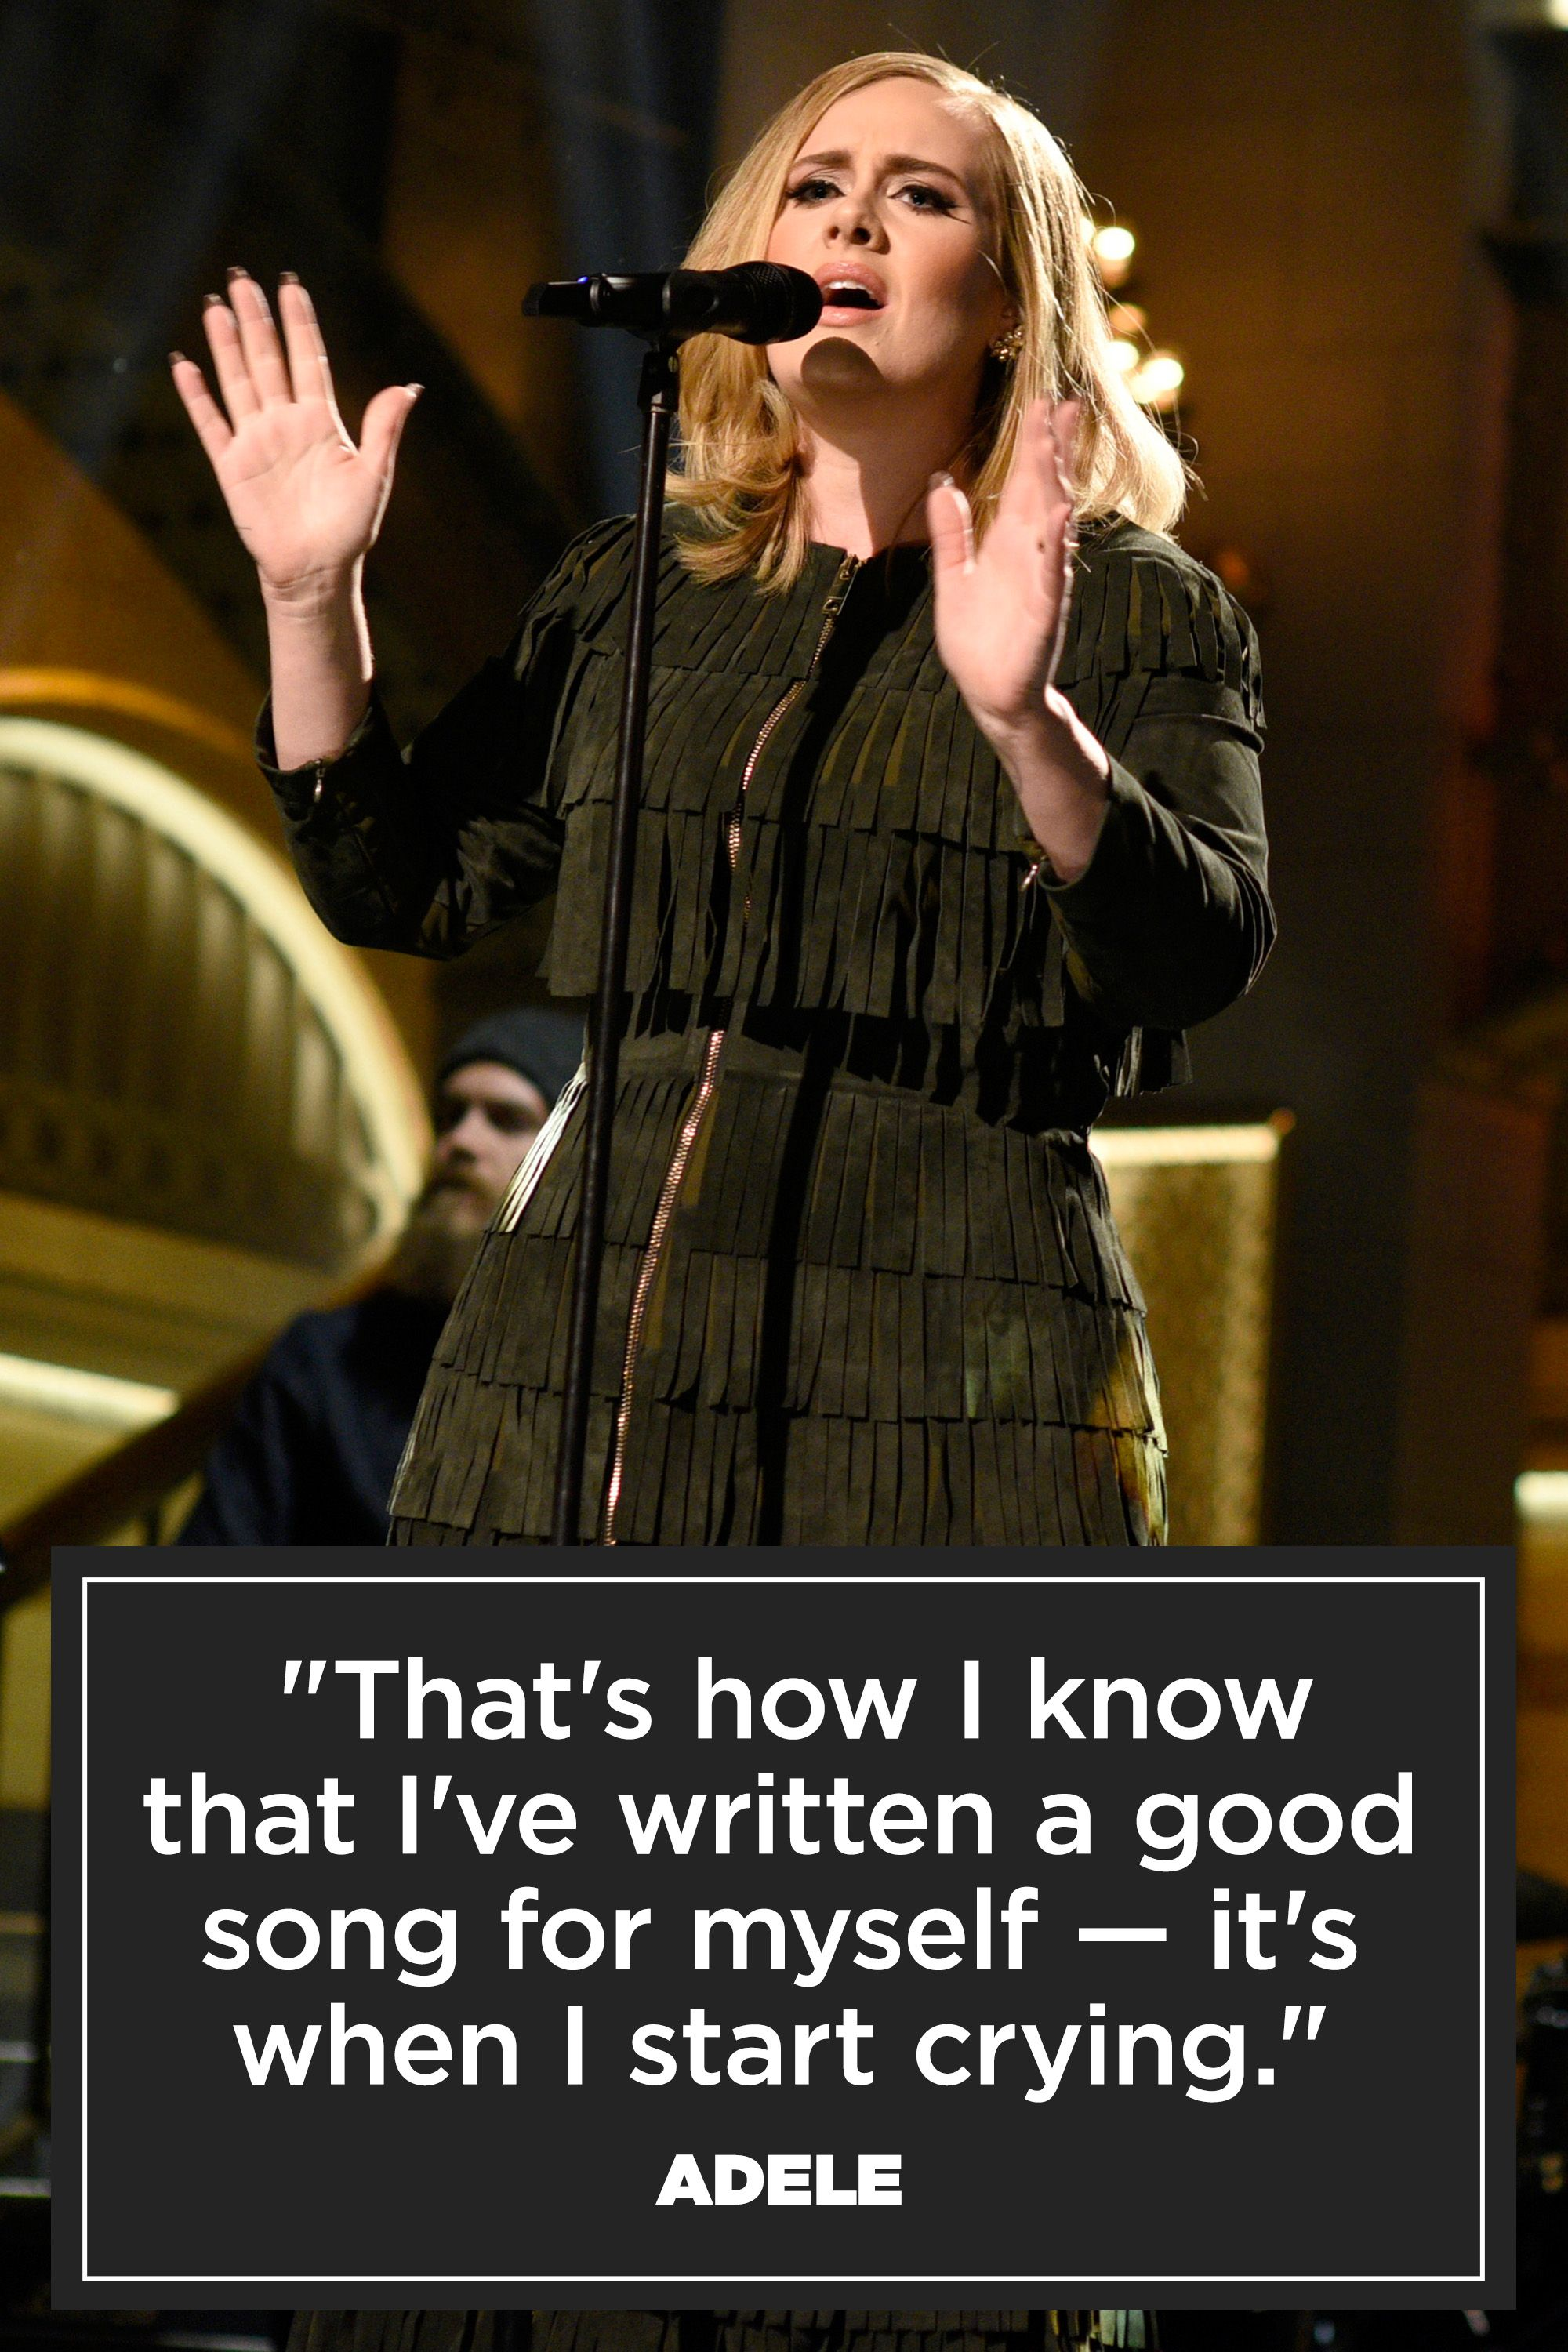 Wedding Singer Quotes 9 Of Adele's Best Quotes  Inspiring Adele Quotes To Live By